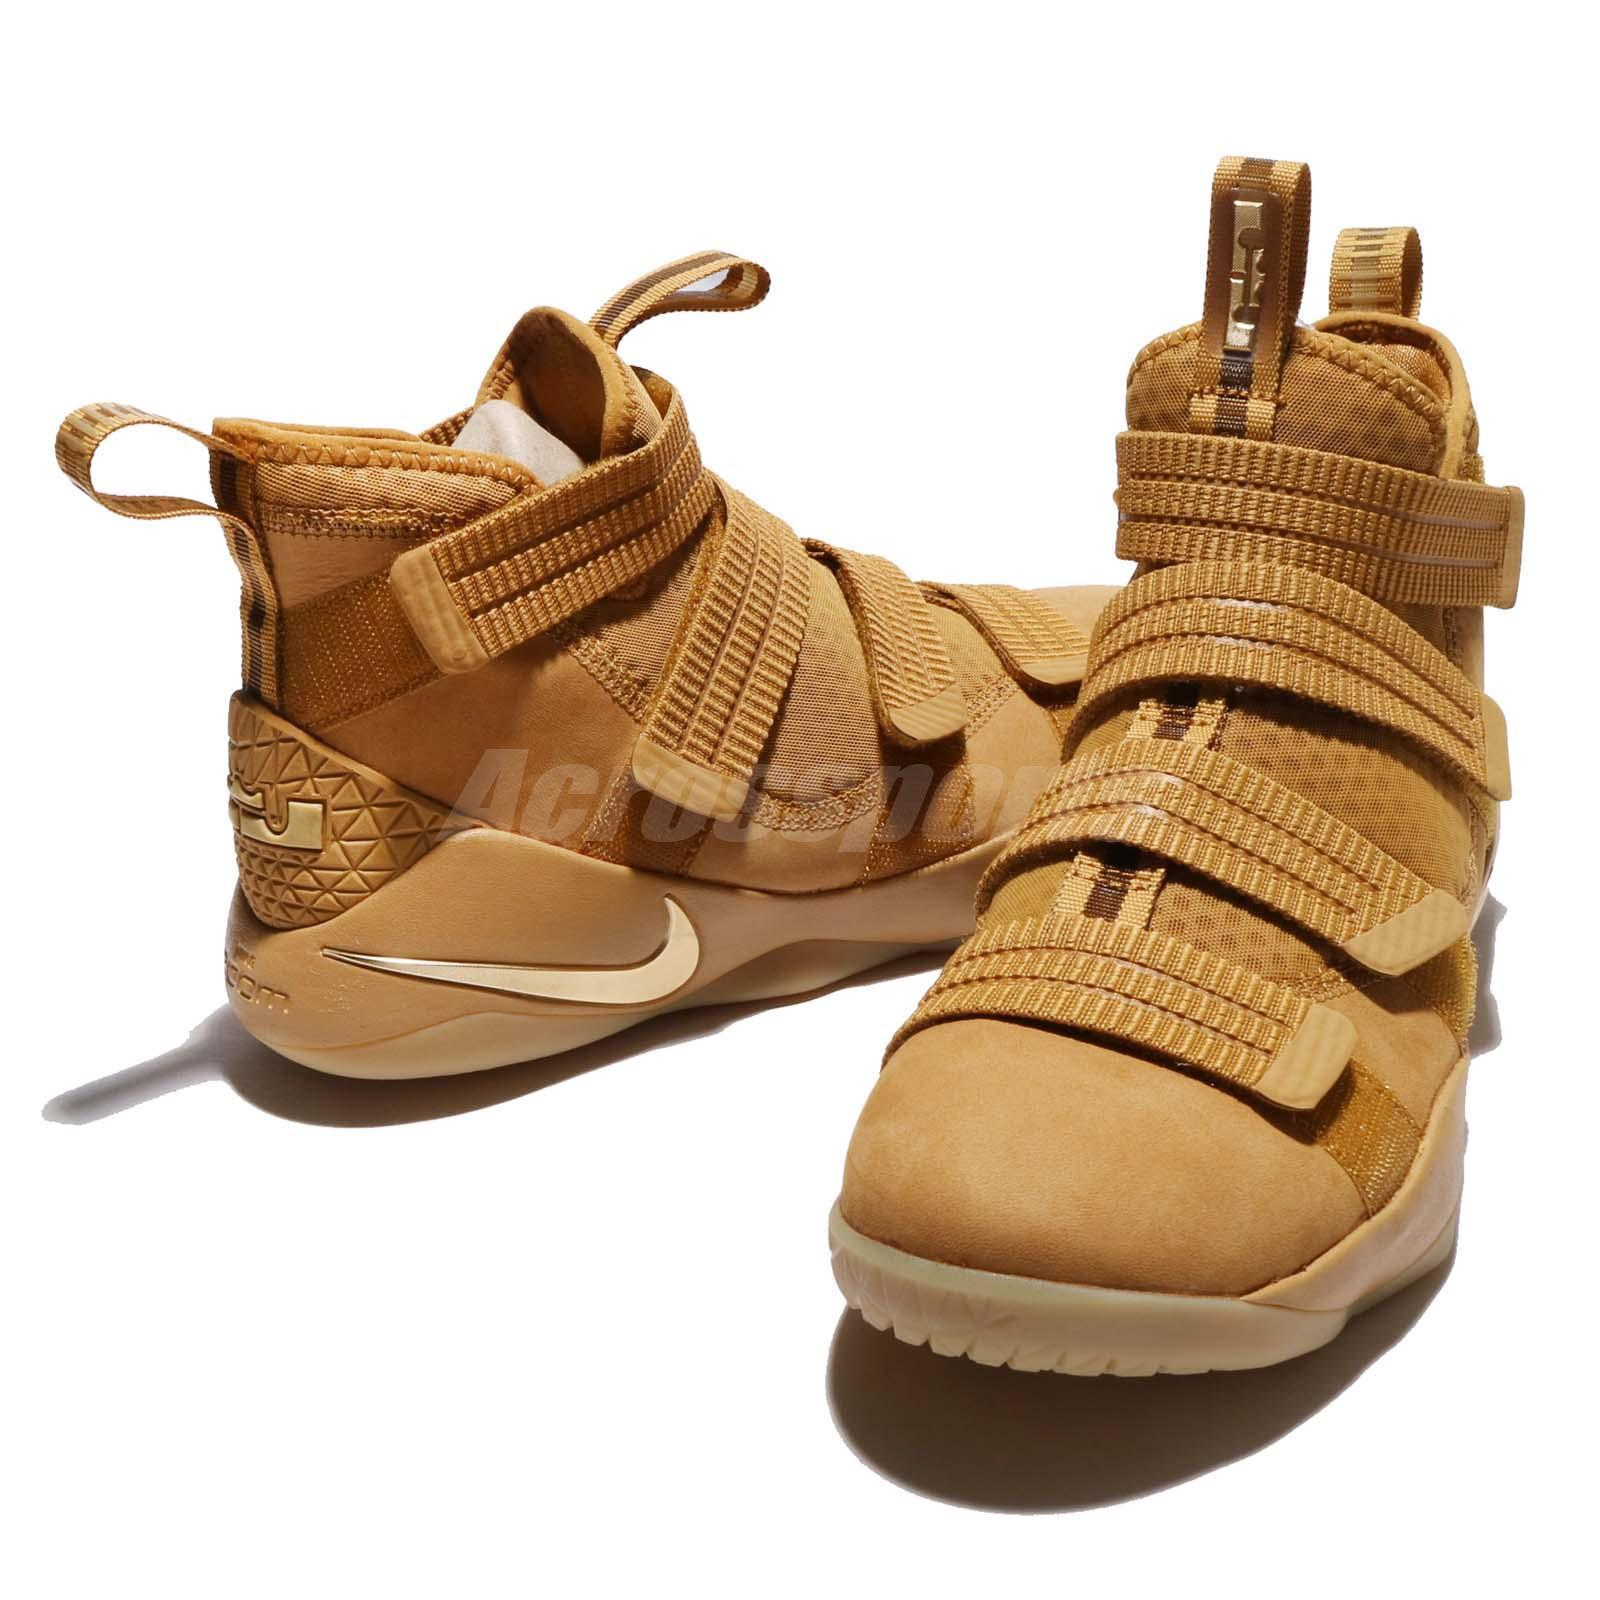 963b7f96a2e nike lebron soldier 11 sfg wheat gold 7 - WearTesters